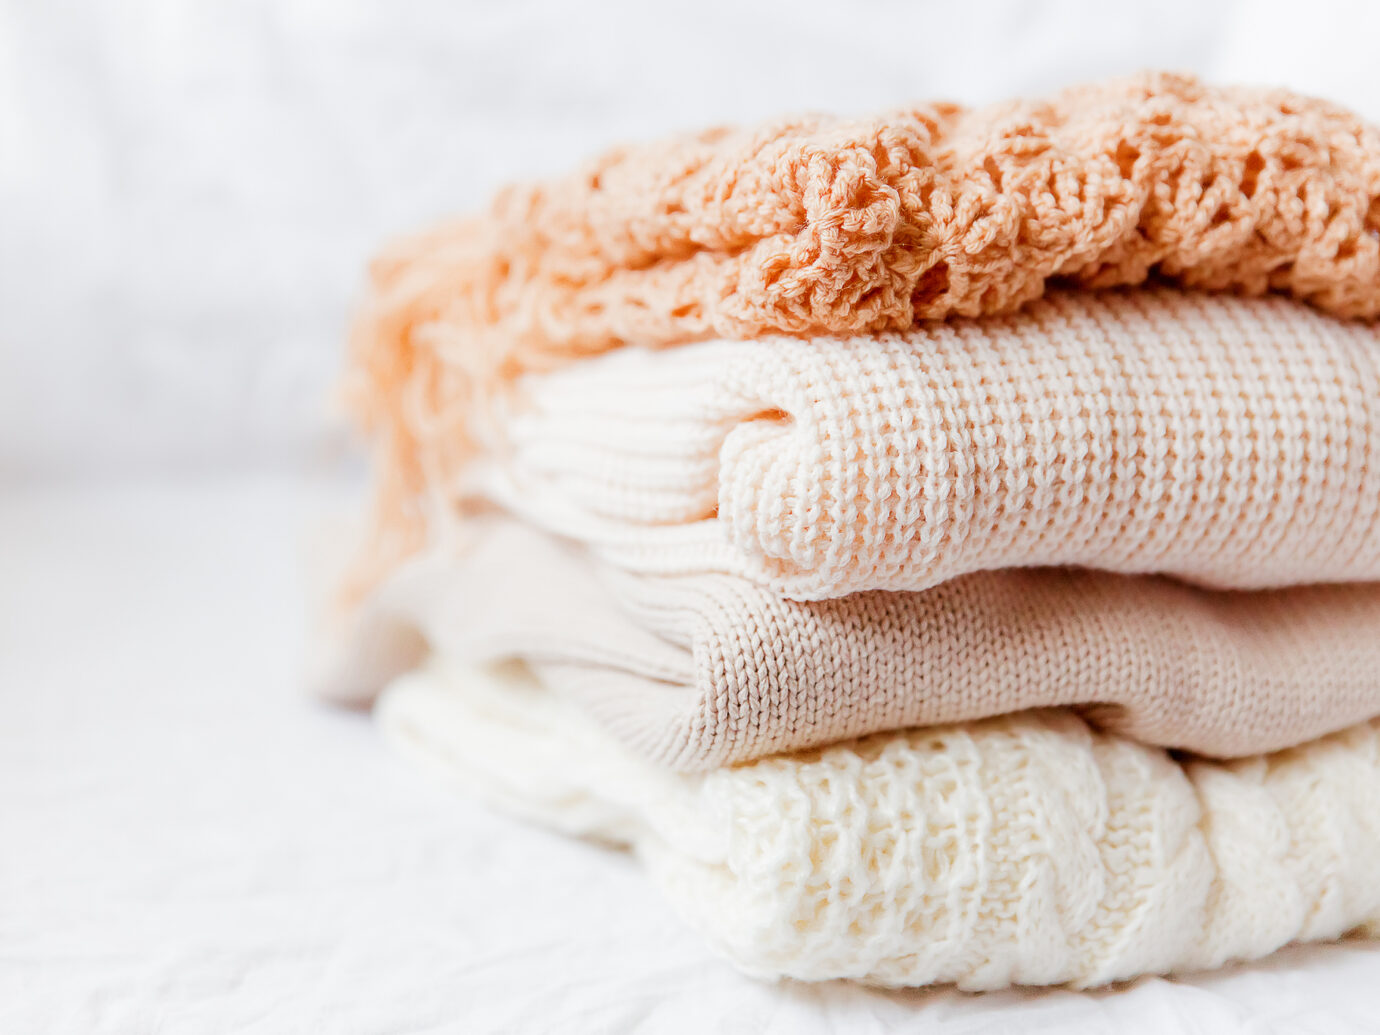 ThredUp Pile of beige woolen clothes on a white background. Warm knitted sweaters